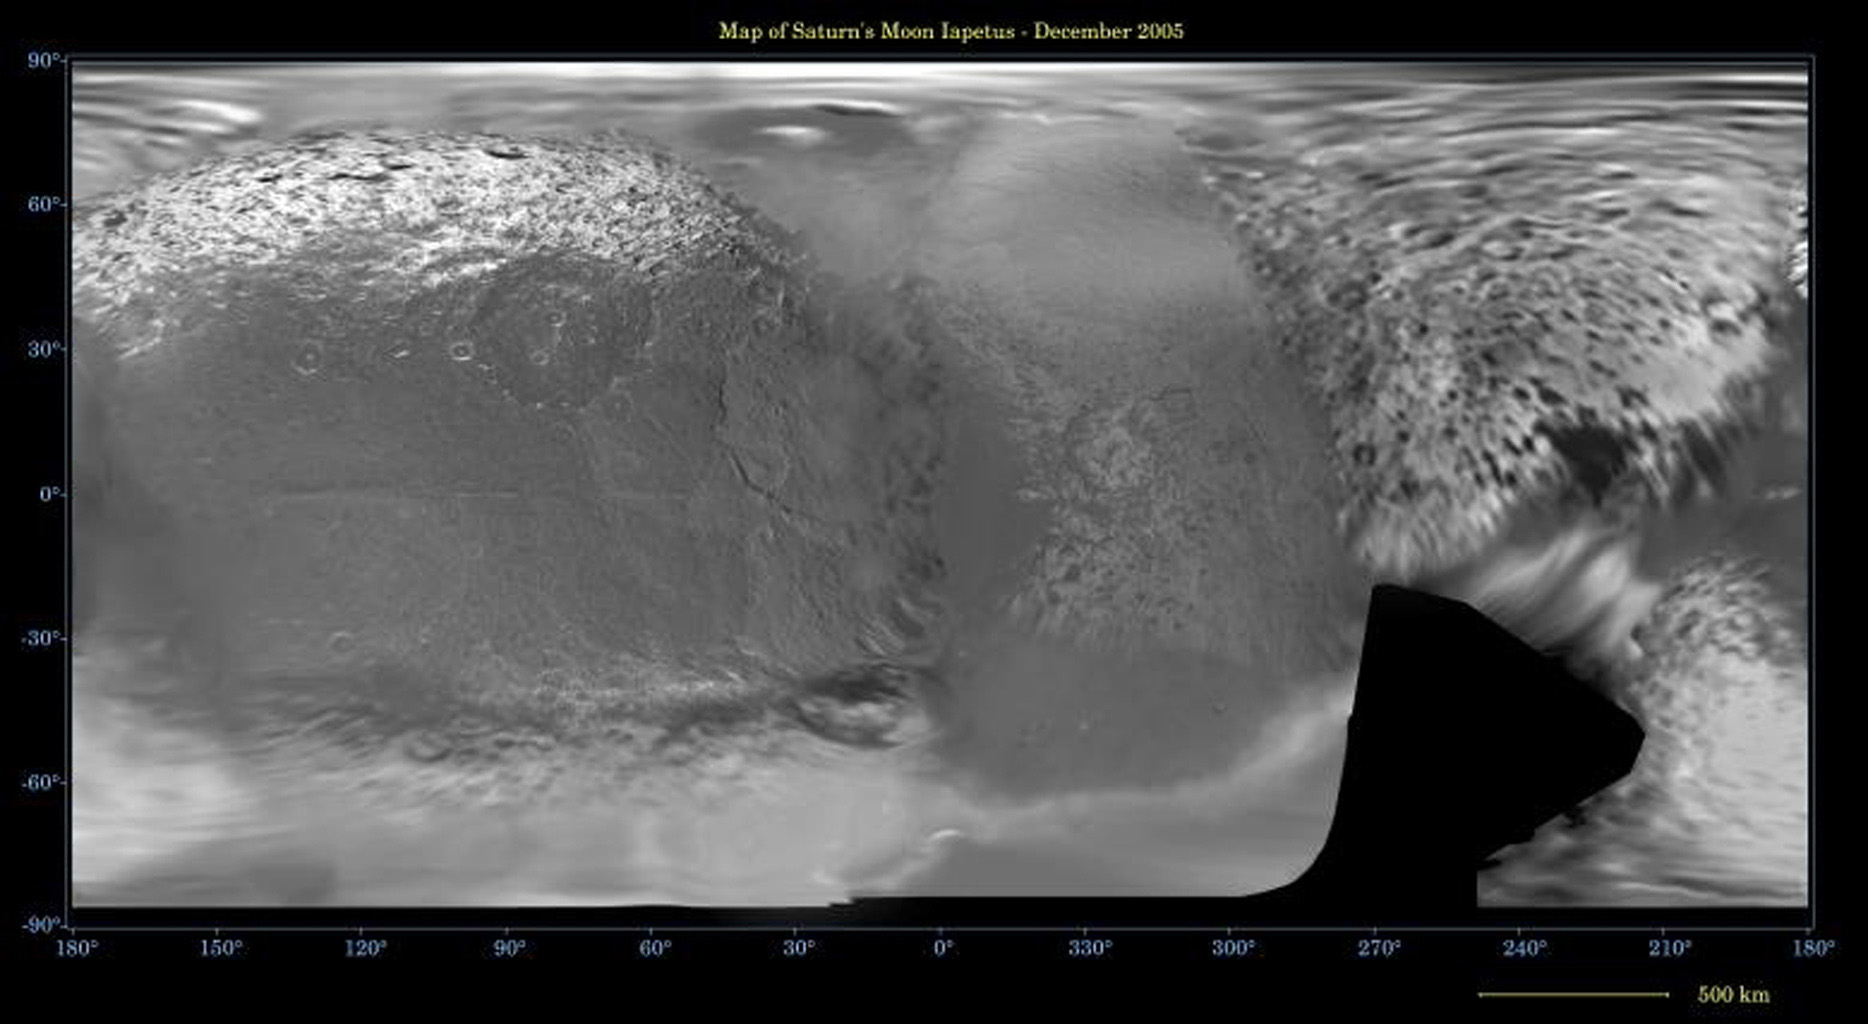 This global digital map of Saturn's moon Iapetus was created using data taken during NASA's Cassini and Voyager spacecraft flybys. The map is an equidistant projection and has a scale of 641 meters (2,103 feet) per pixel.